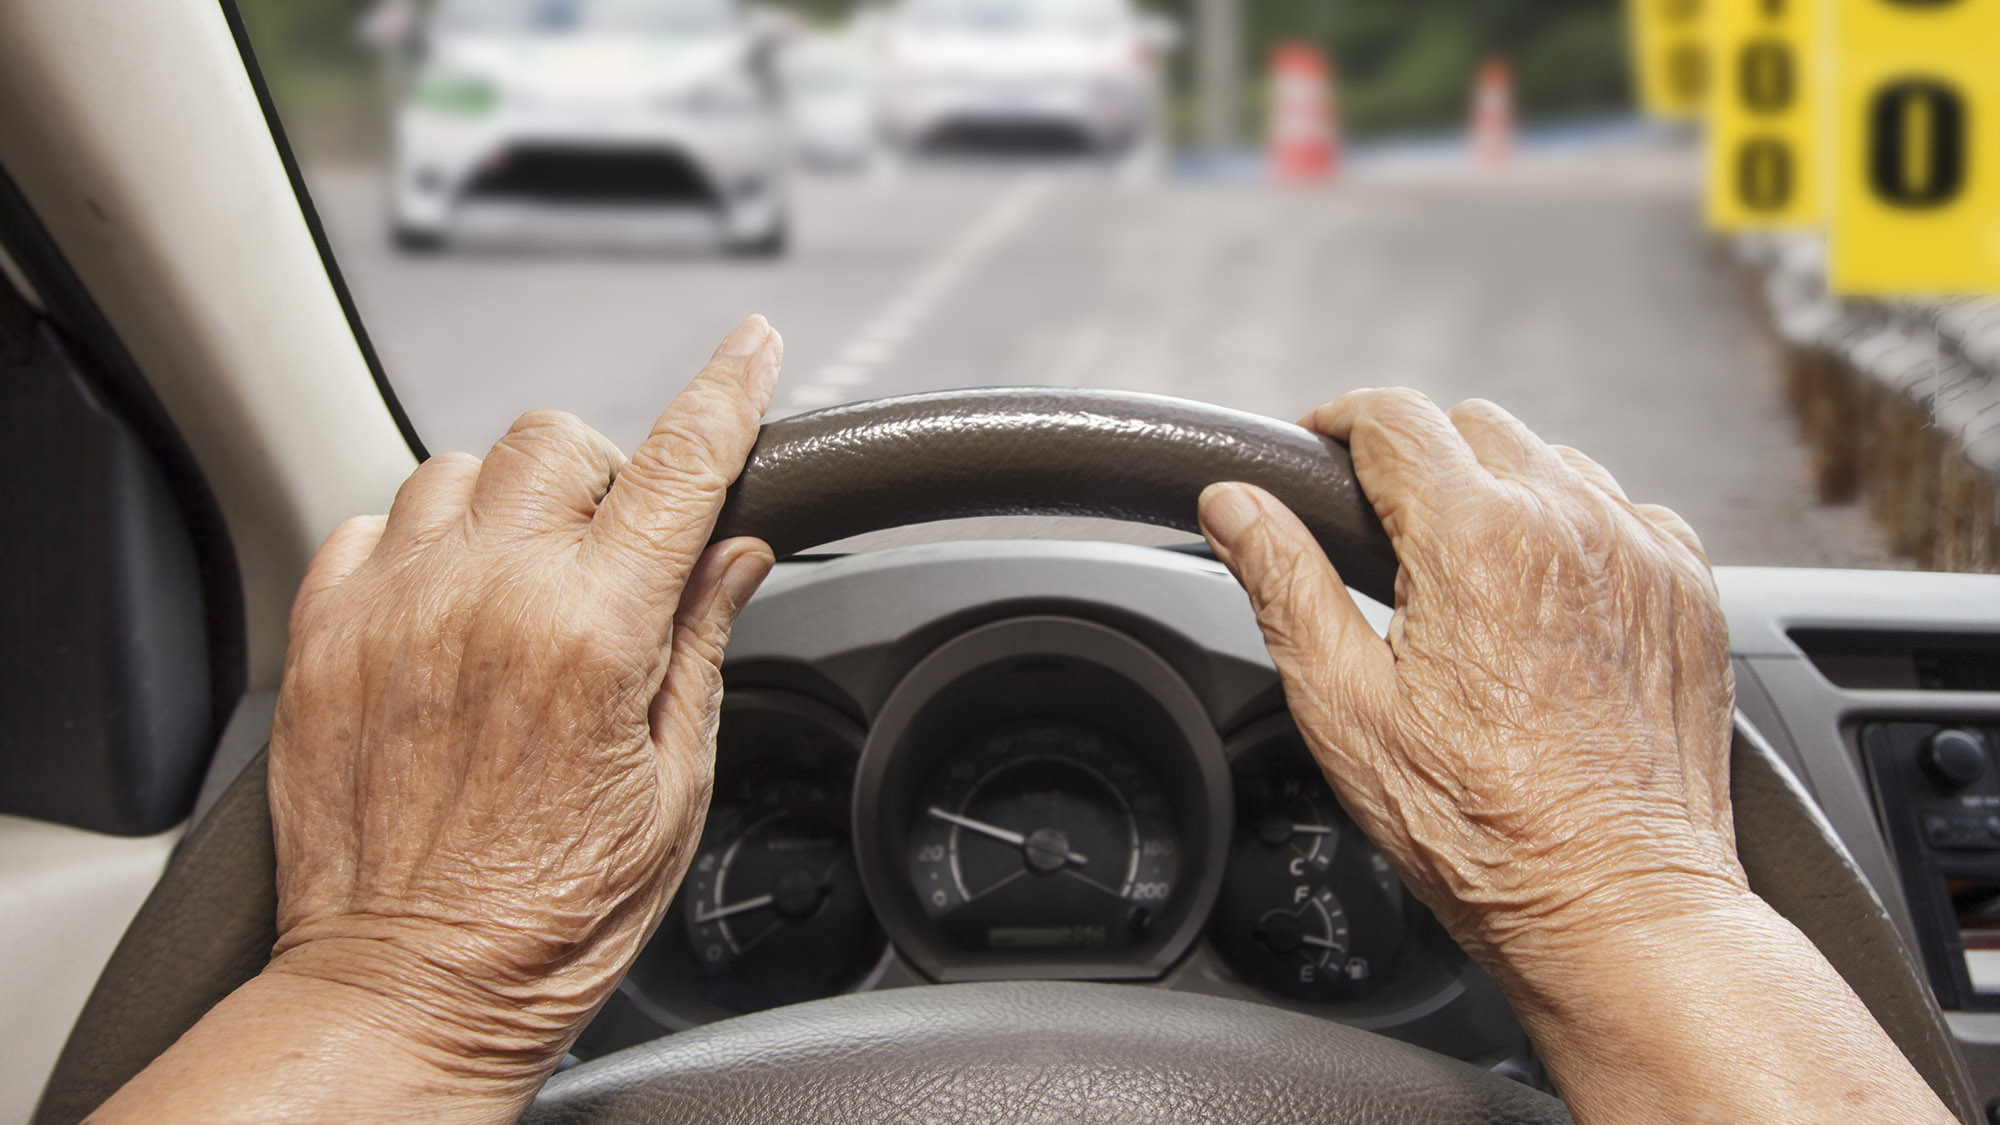 Does ageing make one more dangerous behind the wheel?